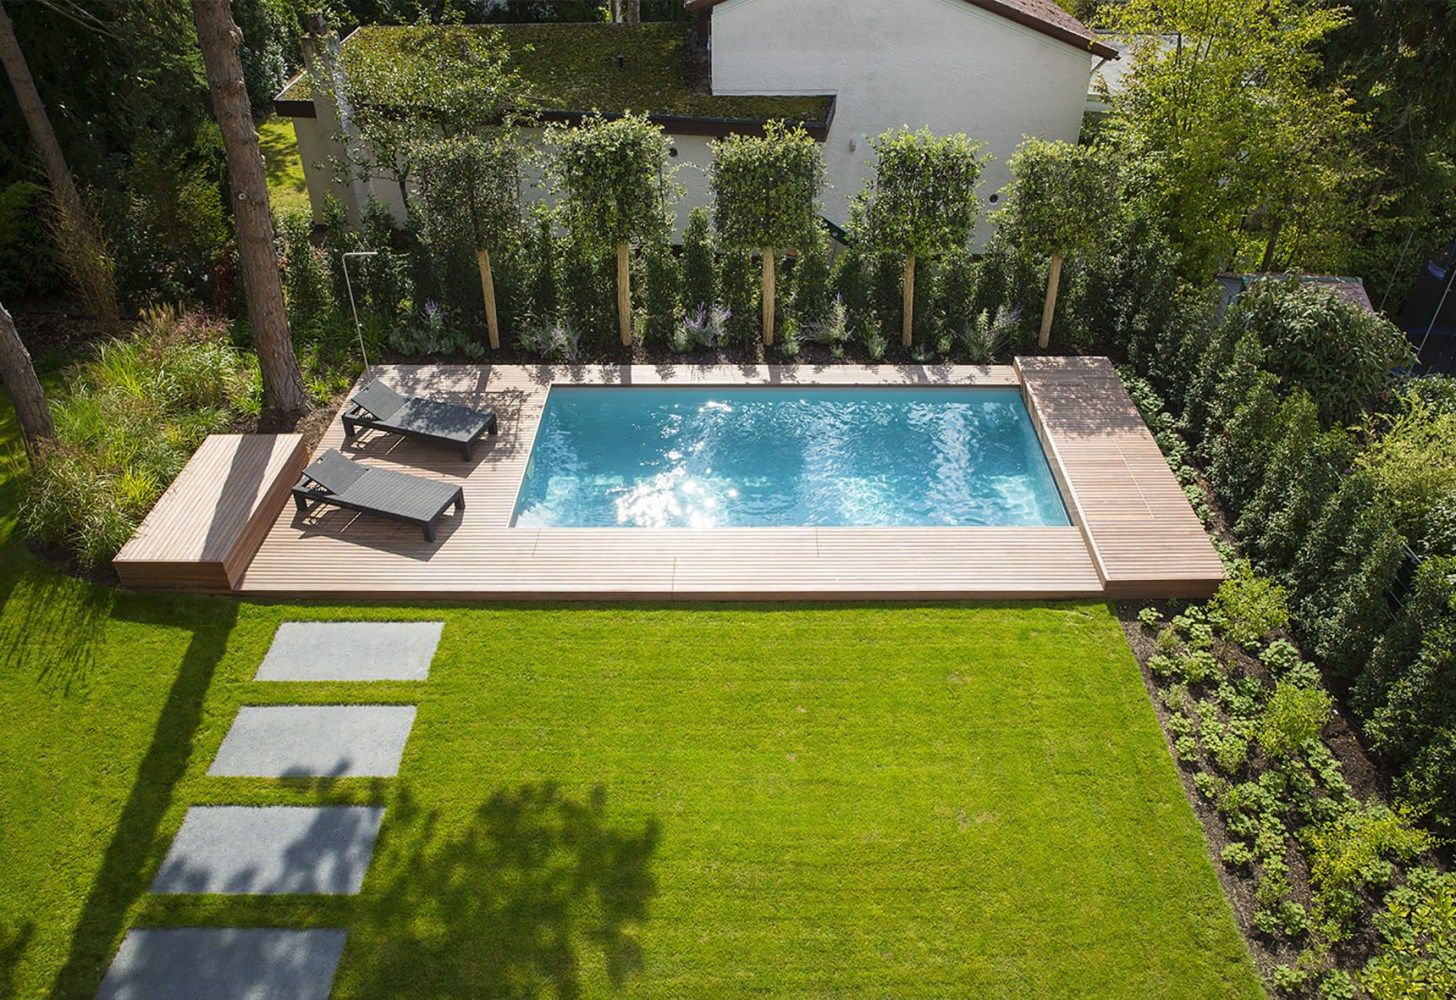 Pool in kleinem garten garten pinterest garten pool for Gartengestaltung mit pool